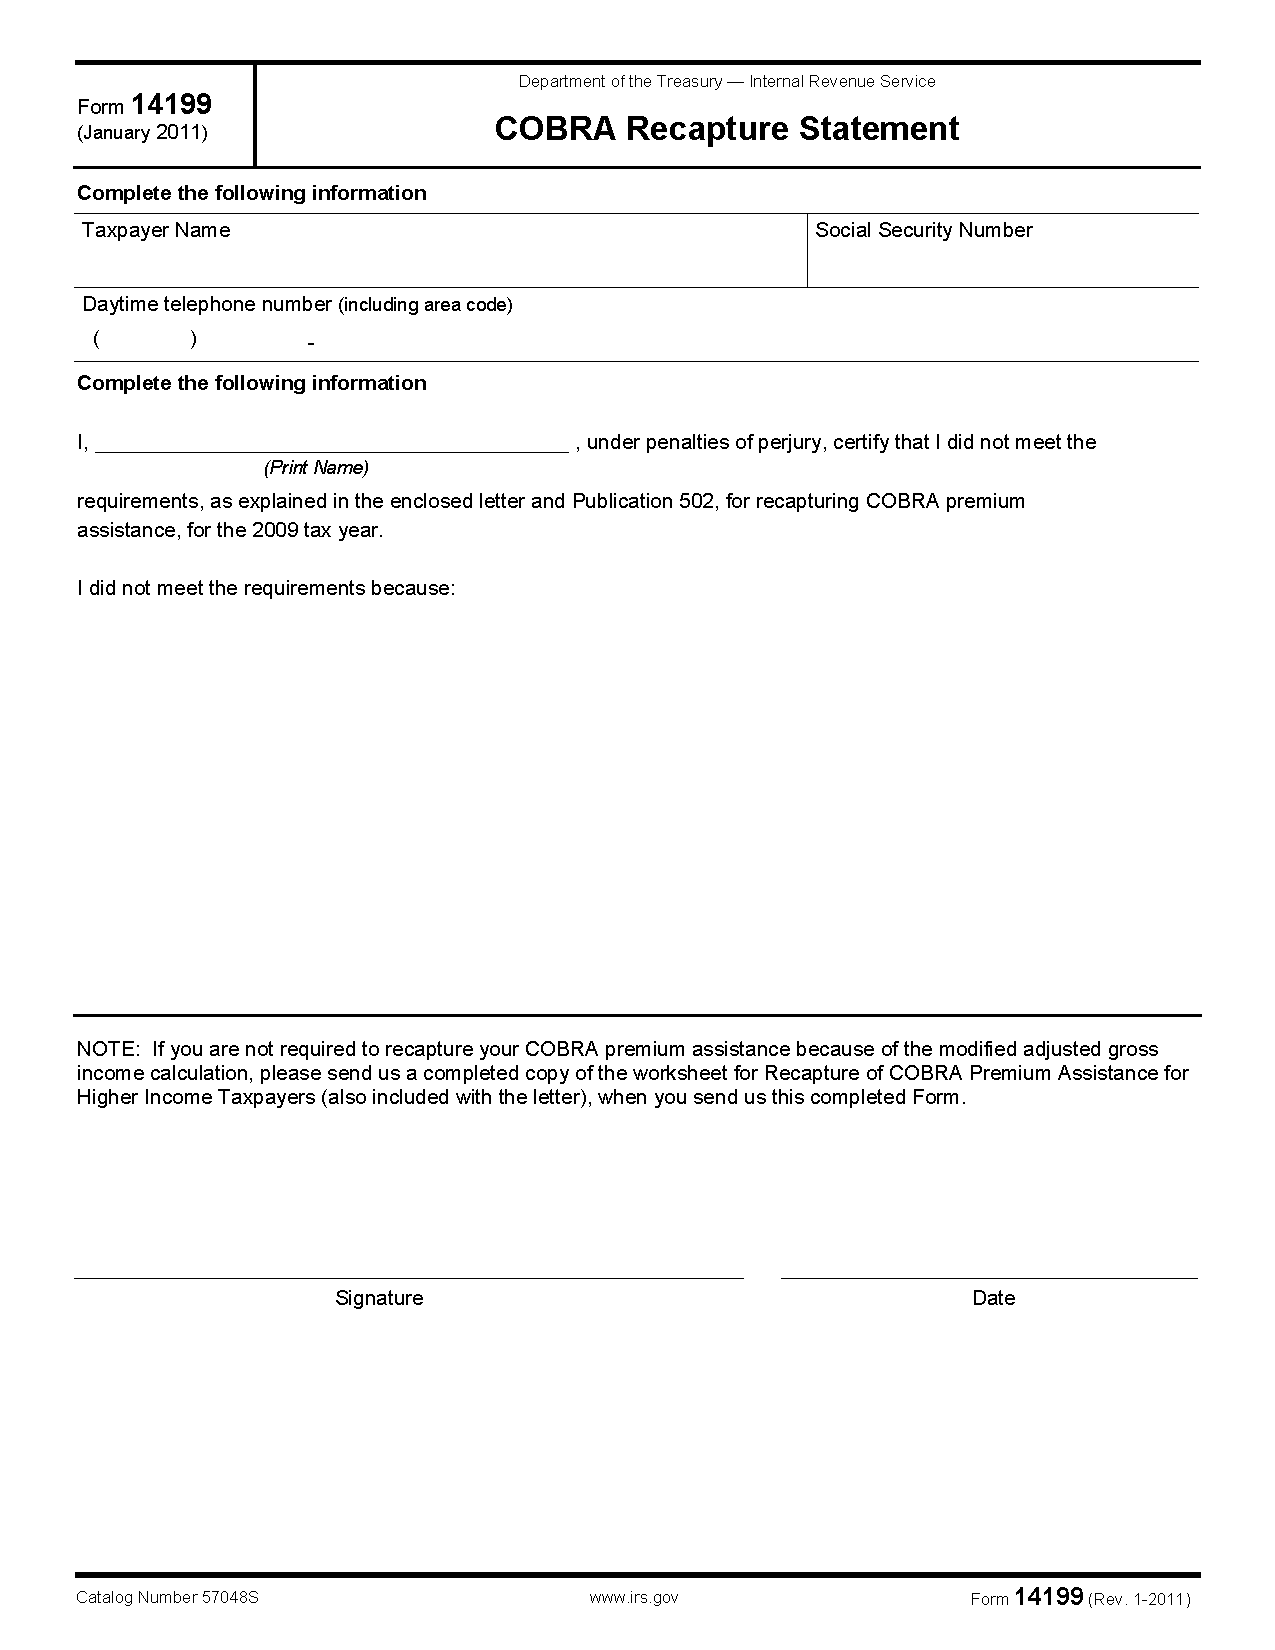 Form 14199 cobra recapture statement view all 2011 irs tax forms falaconquin